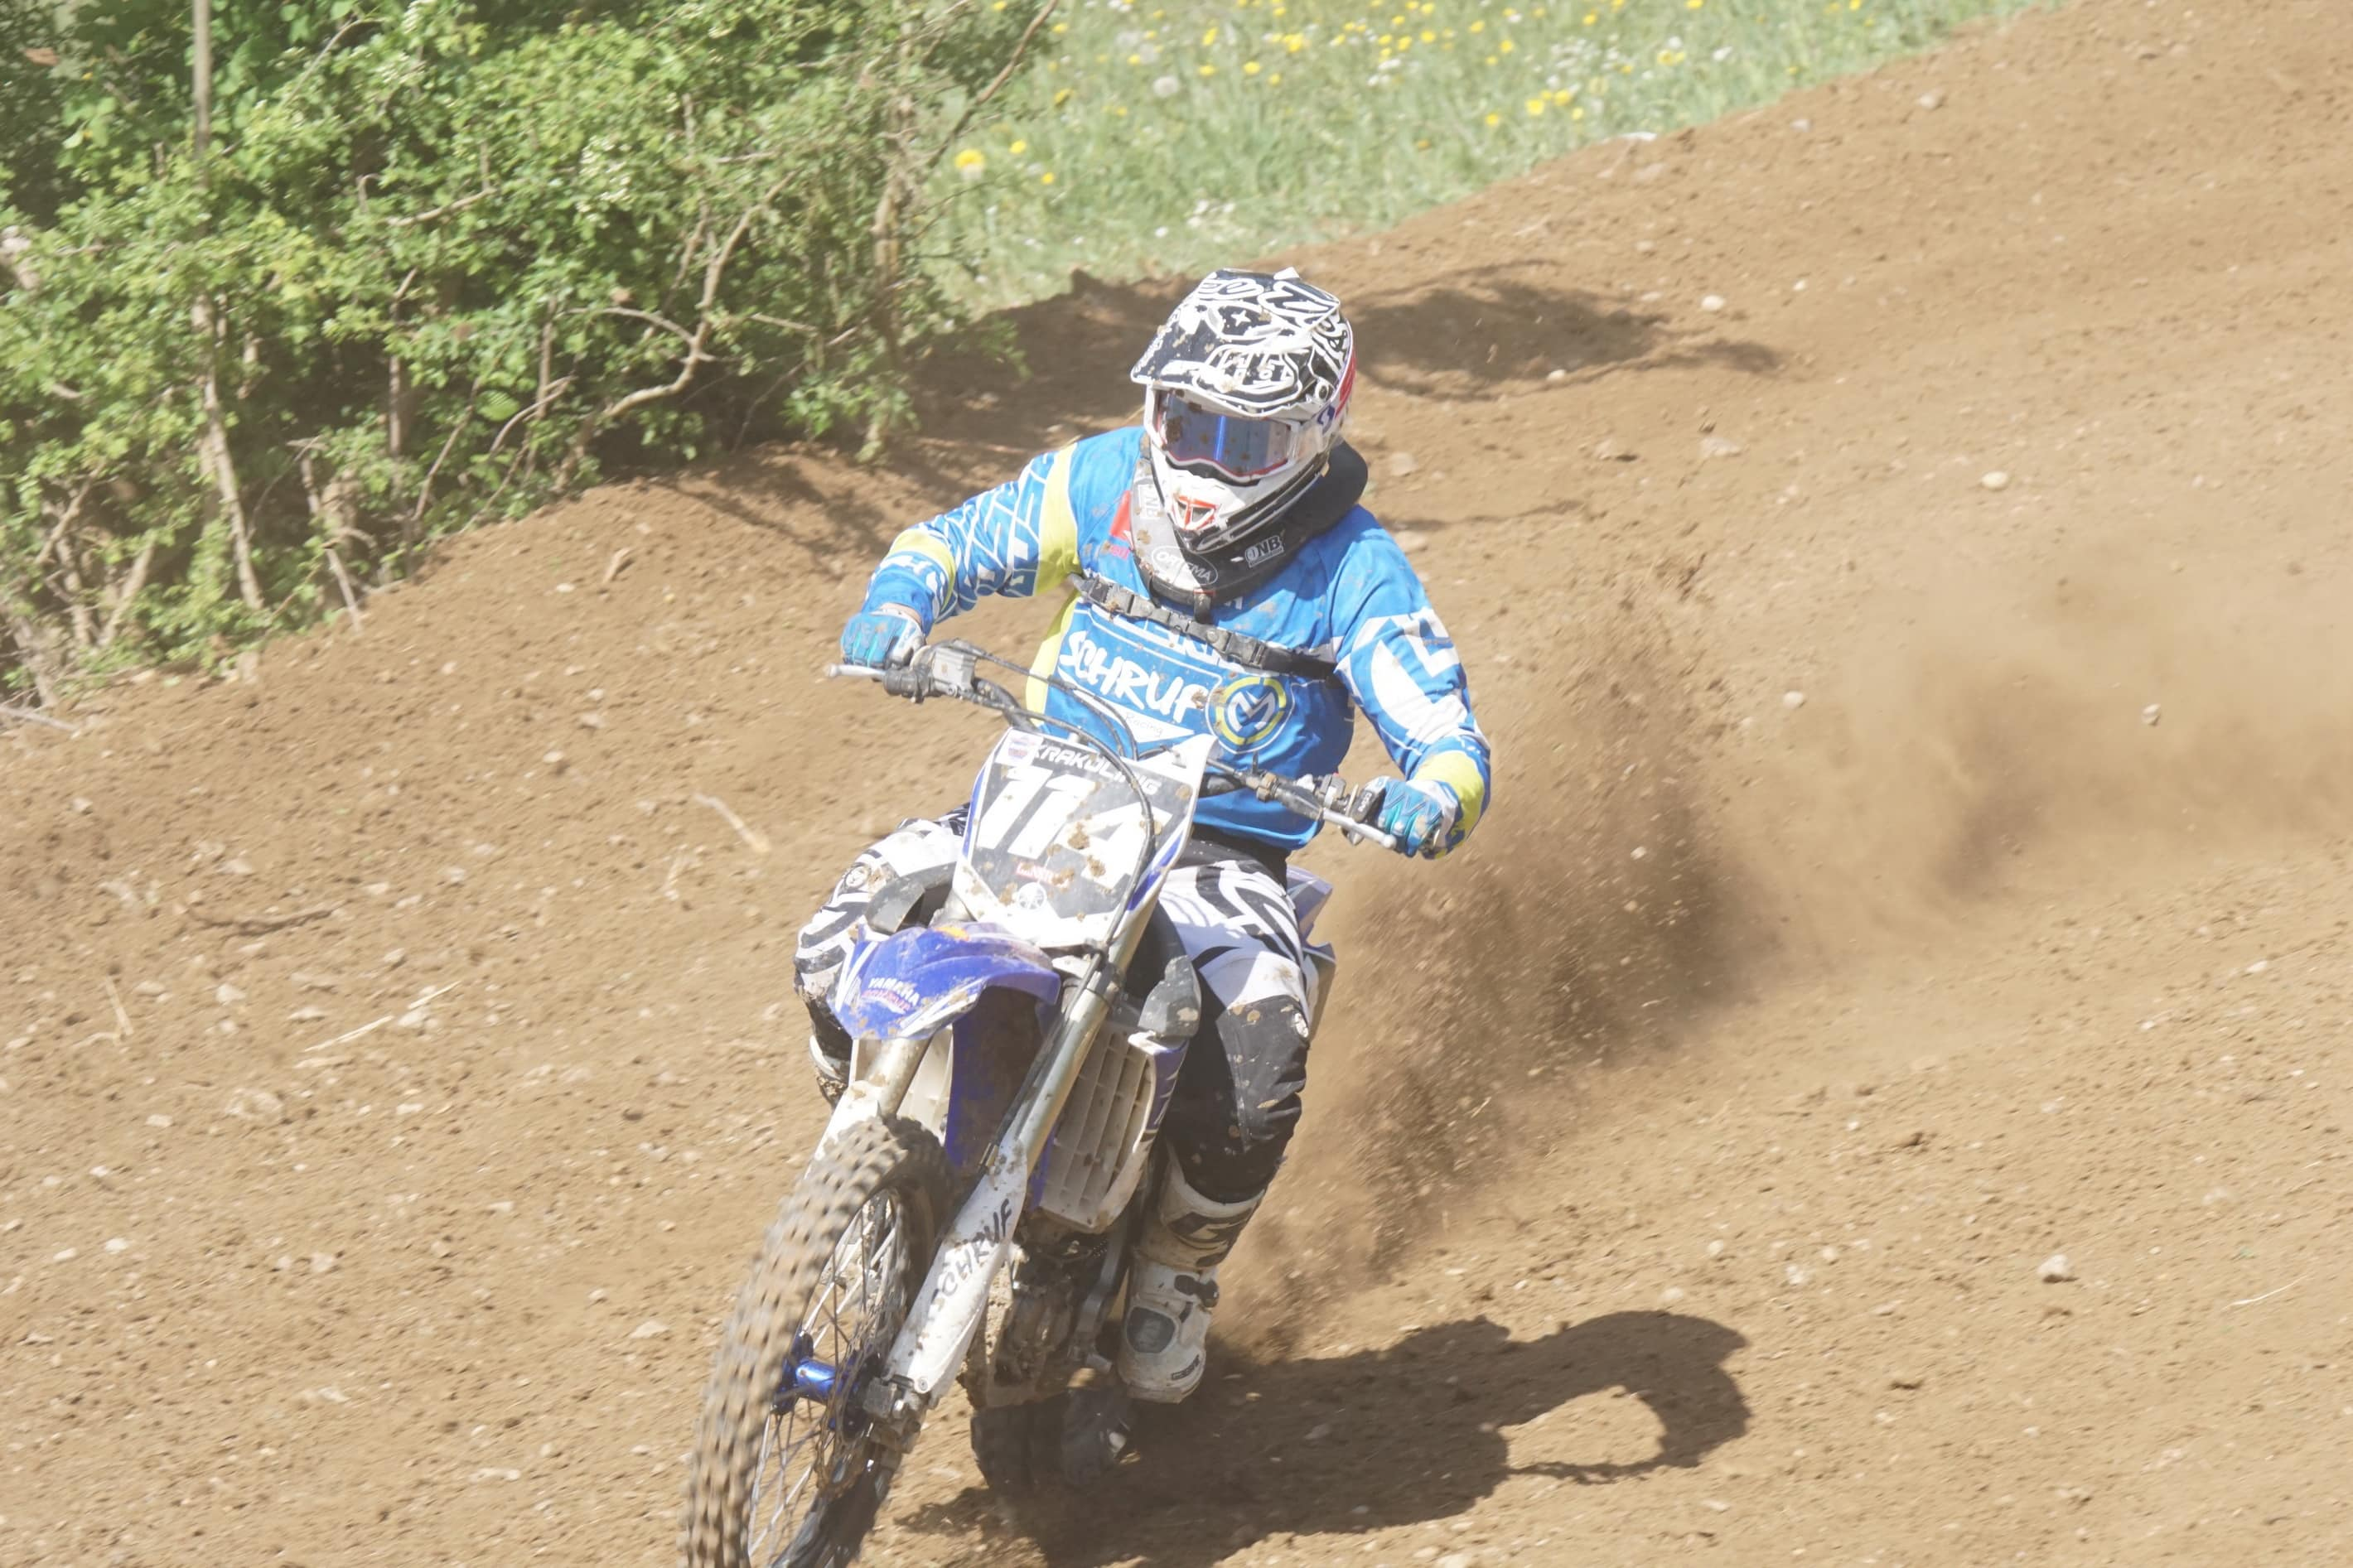 DSC 102_Moto Cross Sittendorf Teil1 am 29.04.2018